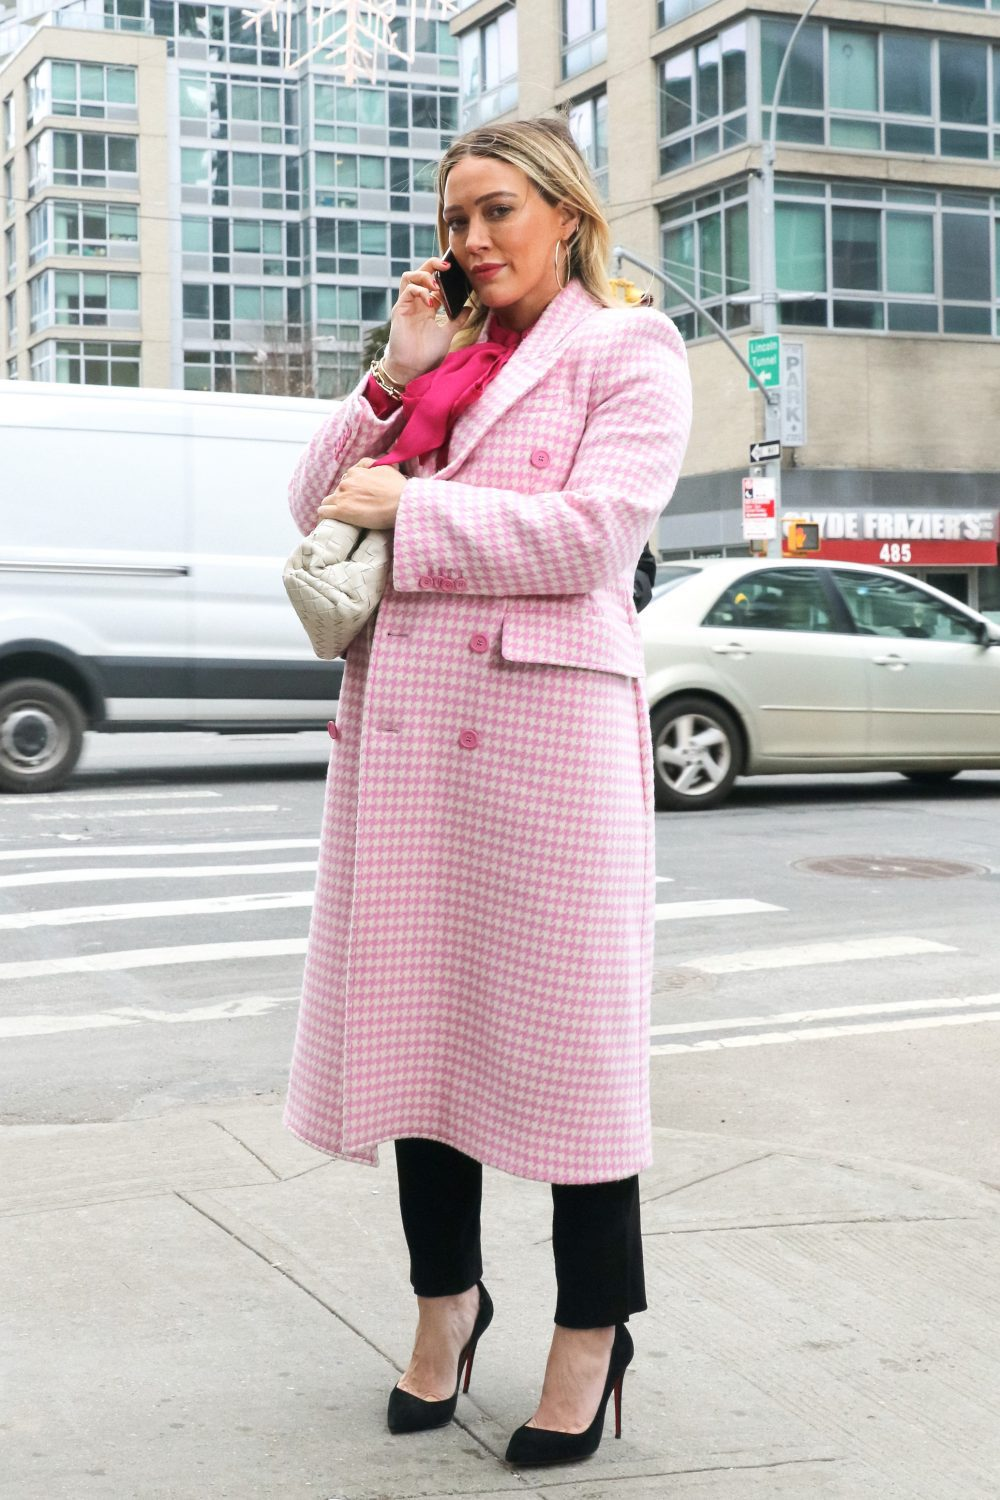 Hilary Duff at film set of the 'Younger' TV Series